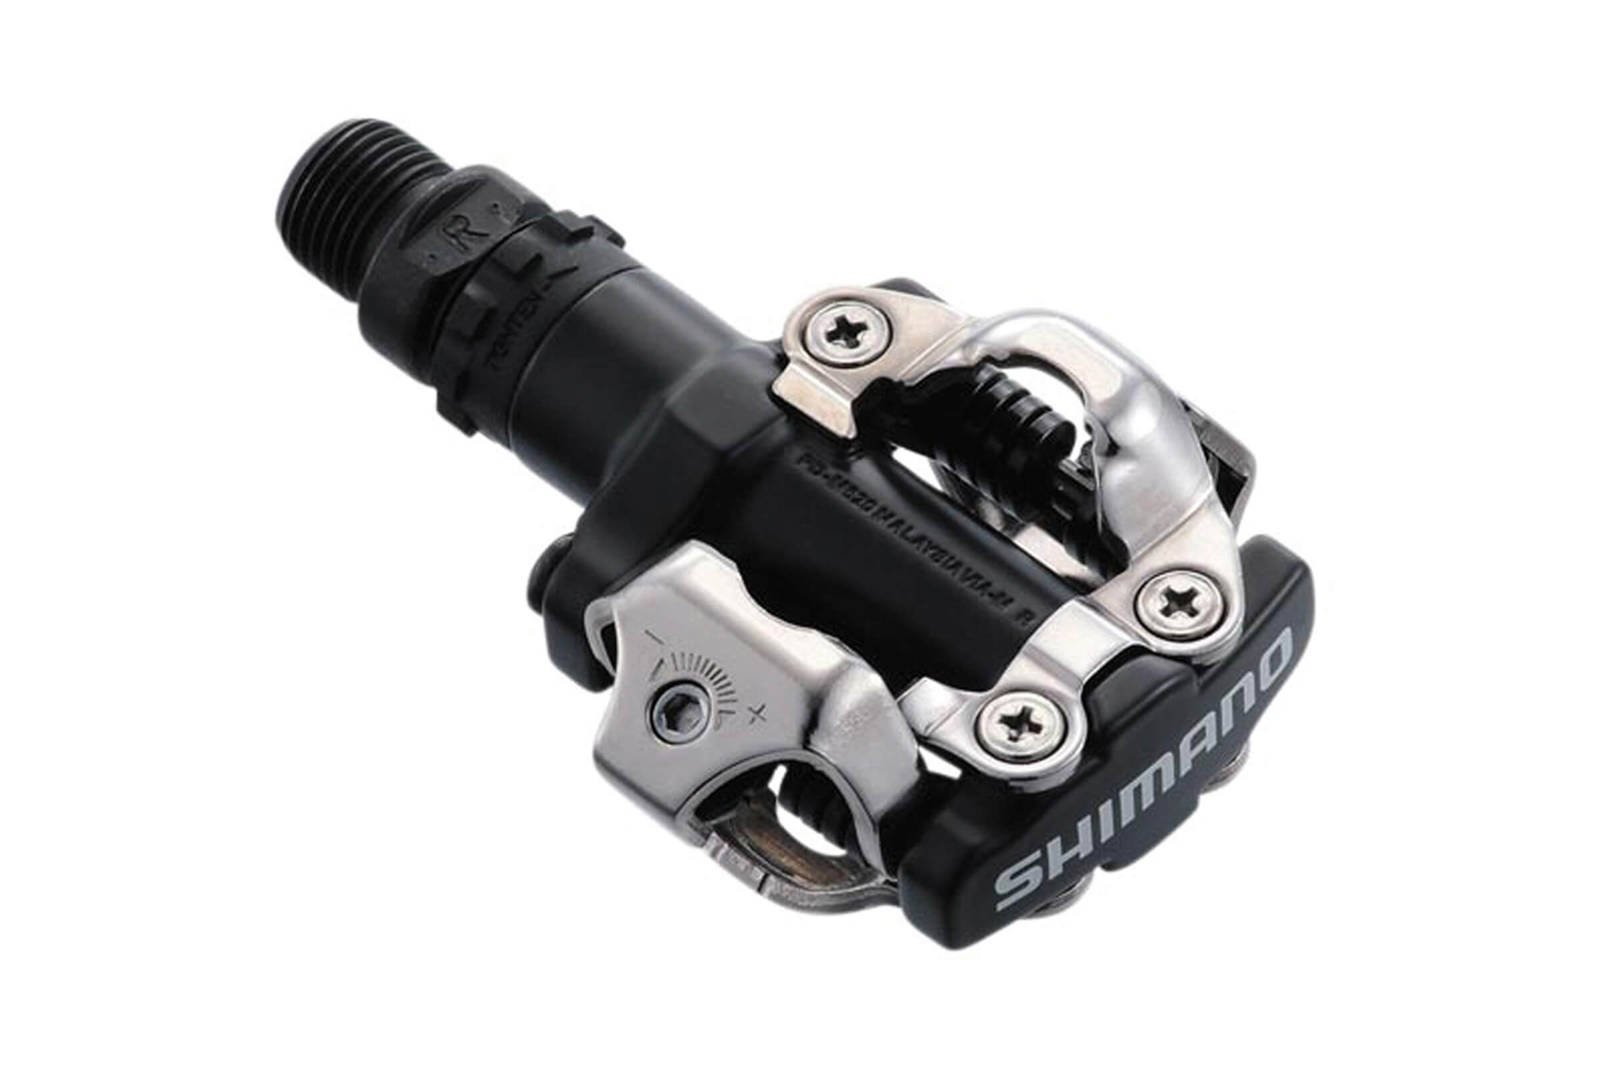 Bicycle pedals SPD DEORE M6000 Series Shimano PD-M520 Black / Silver